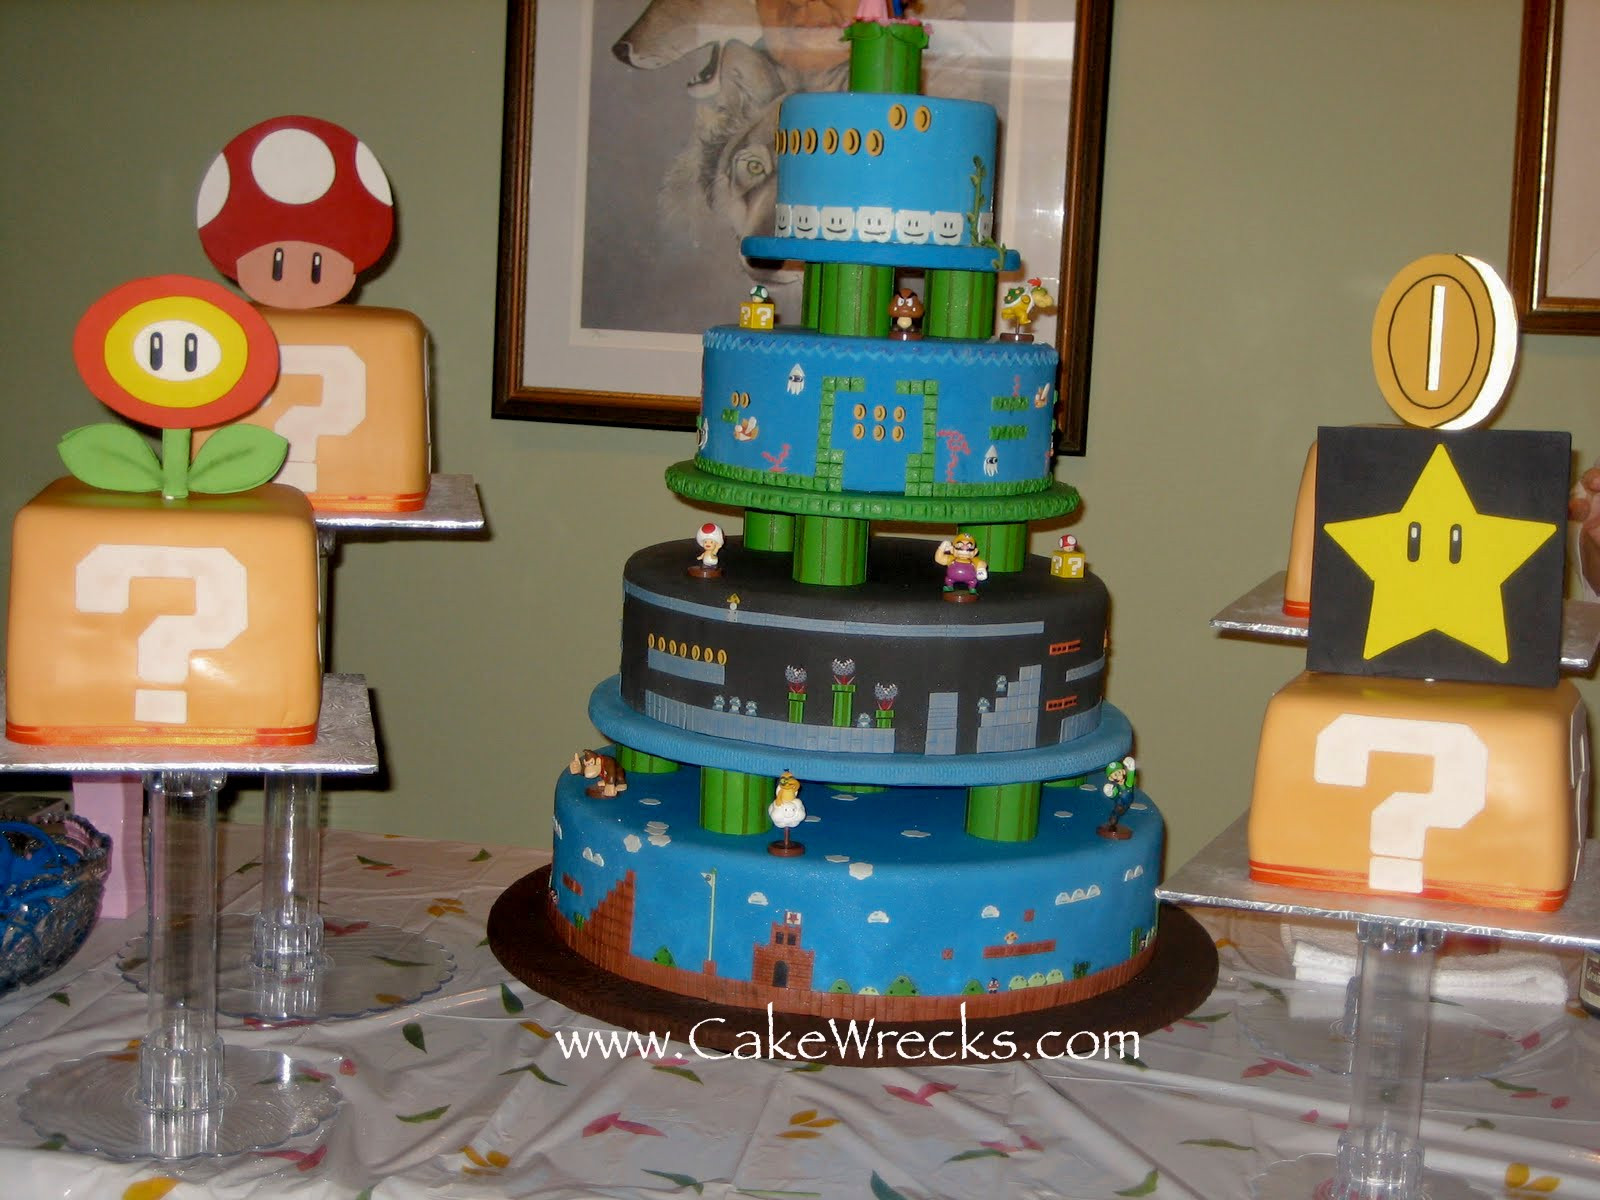 Mario Wedding Cakes  Talk Nerdy To Me 5 Rules of Geek Engagement